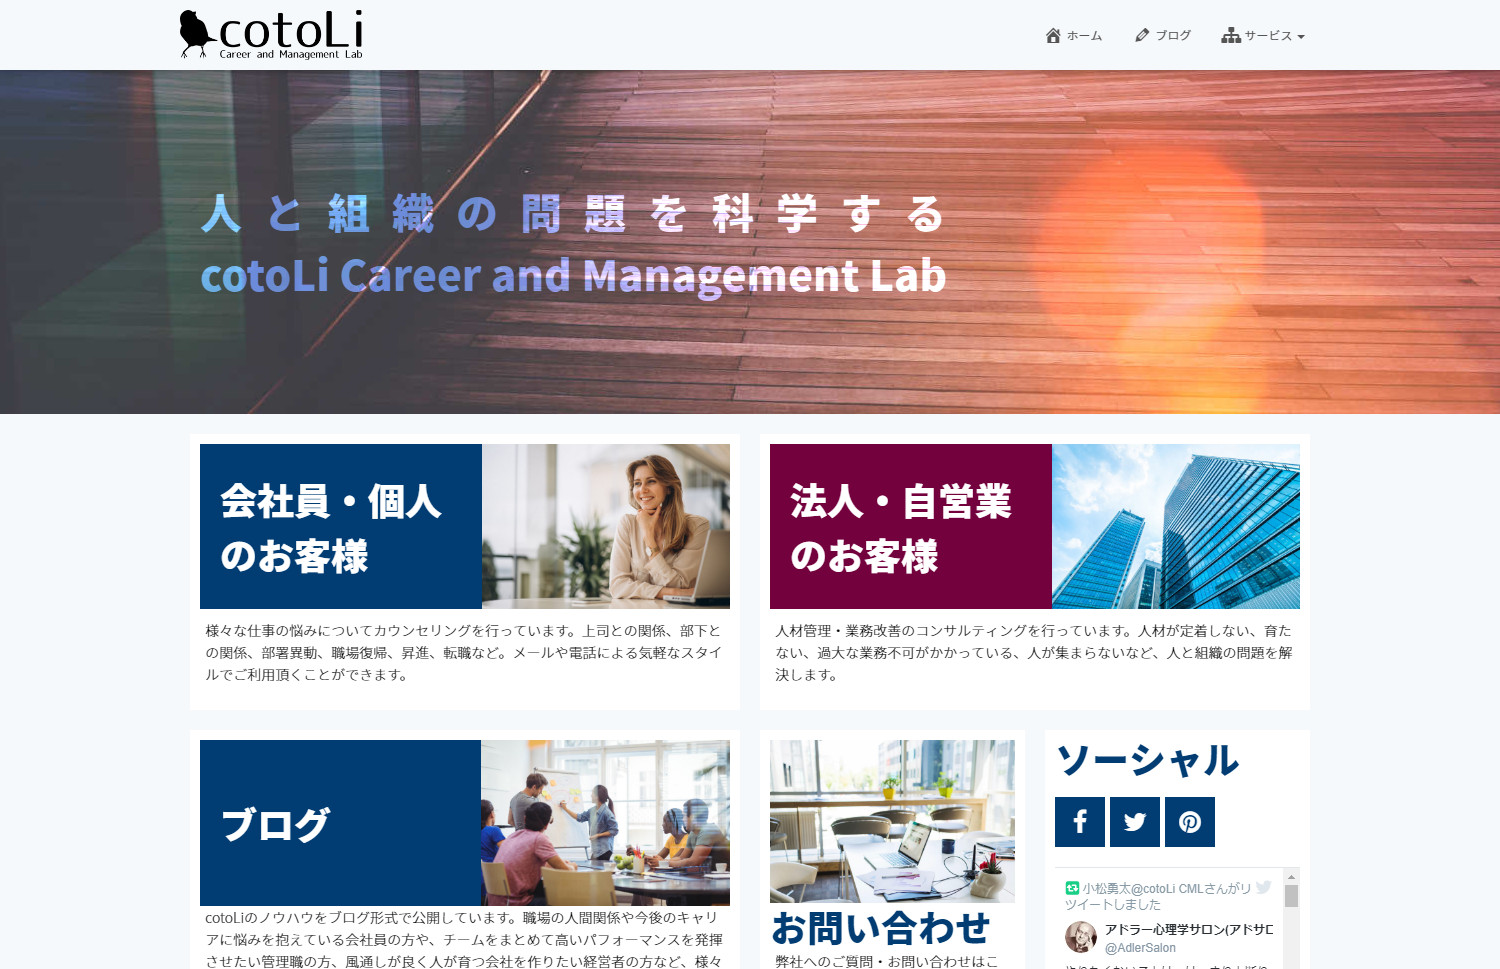 cotoLi Career and Management Lab